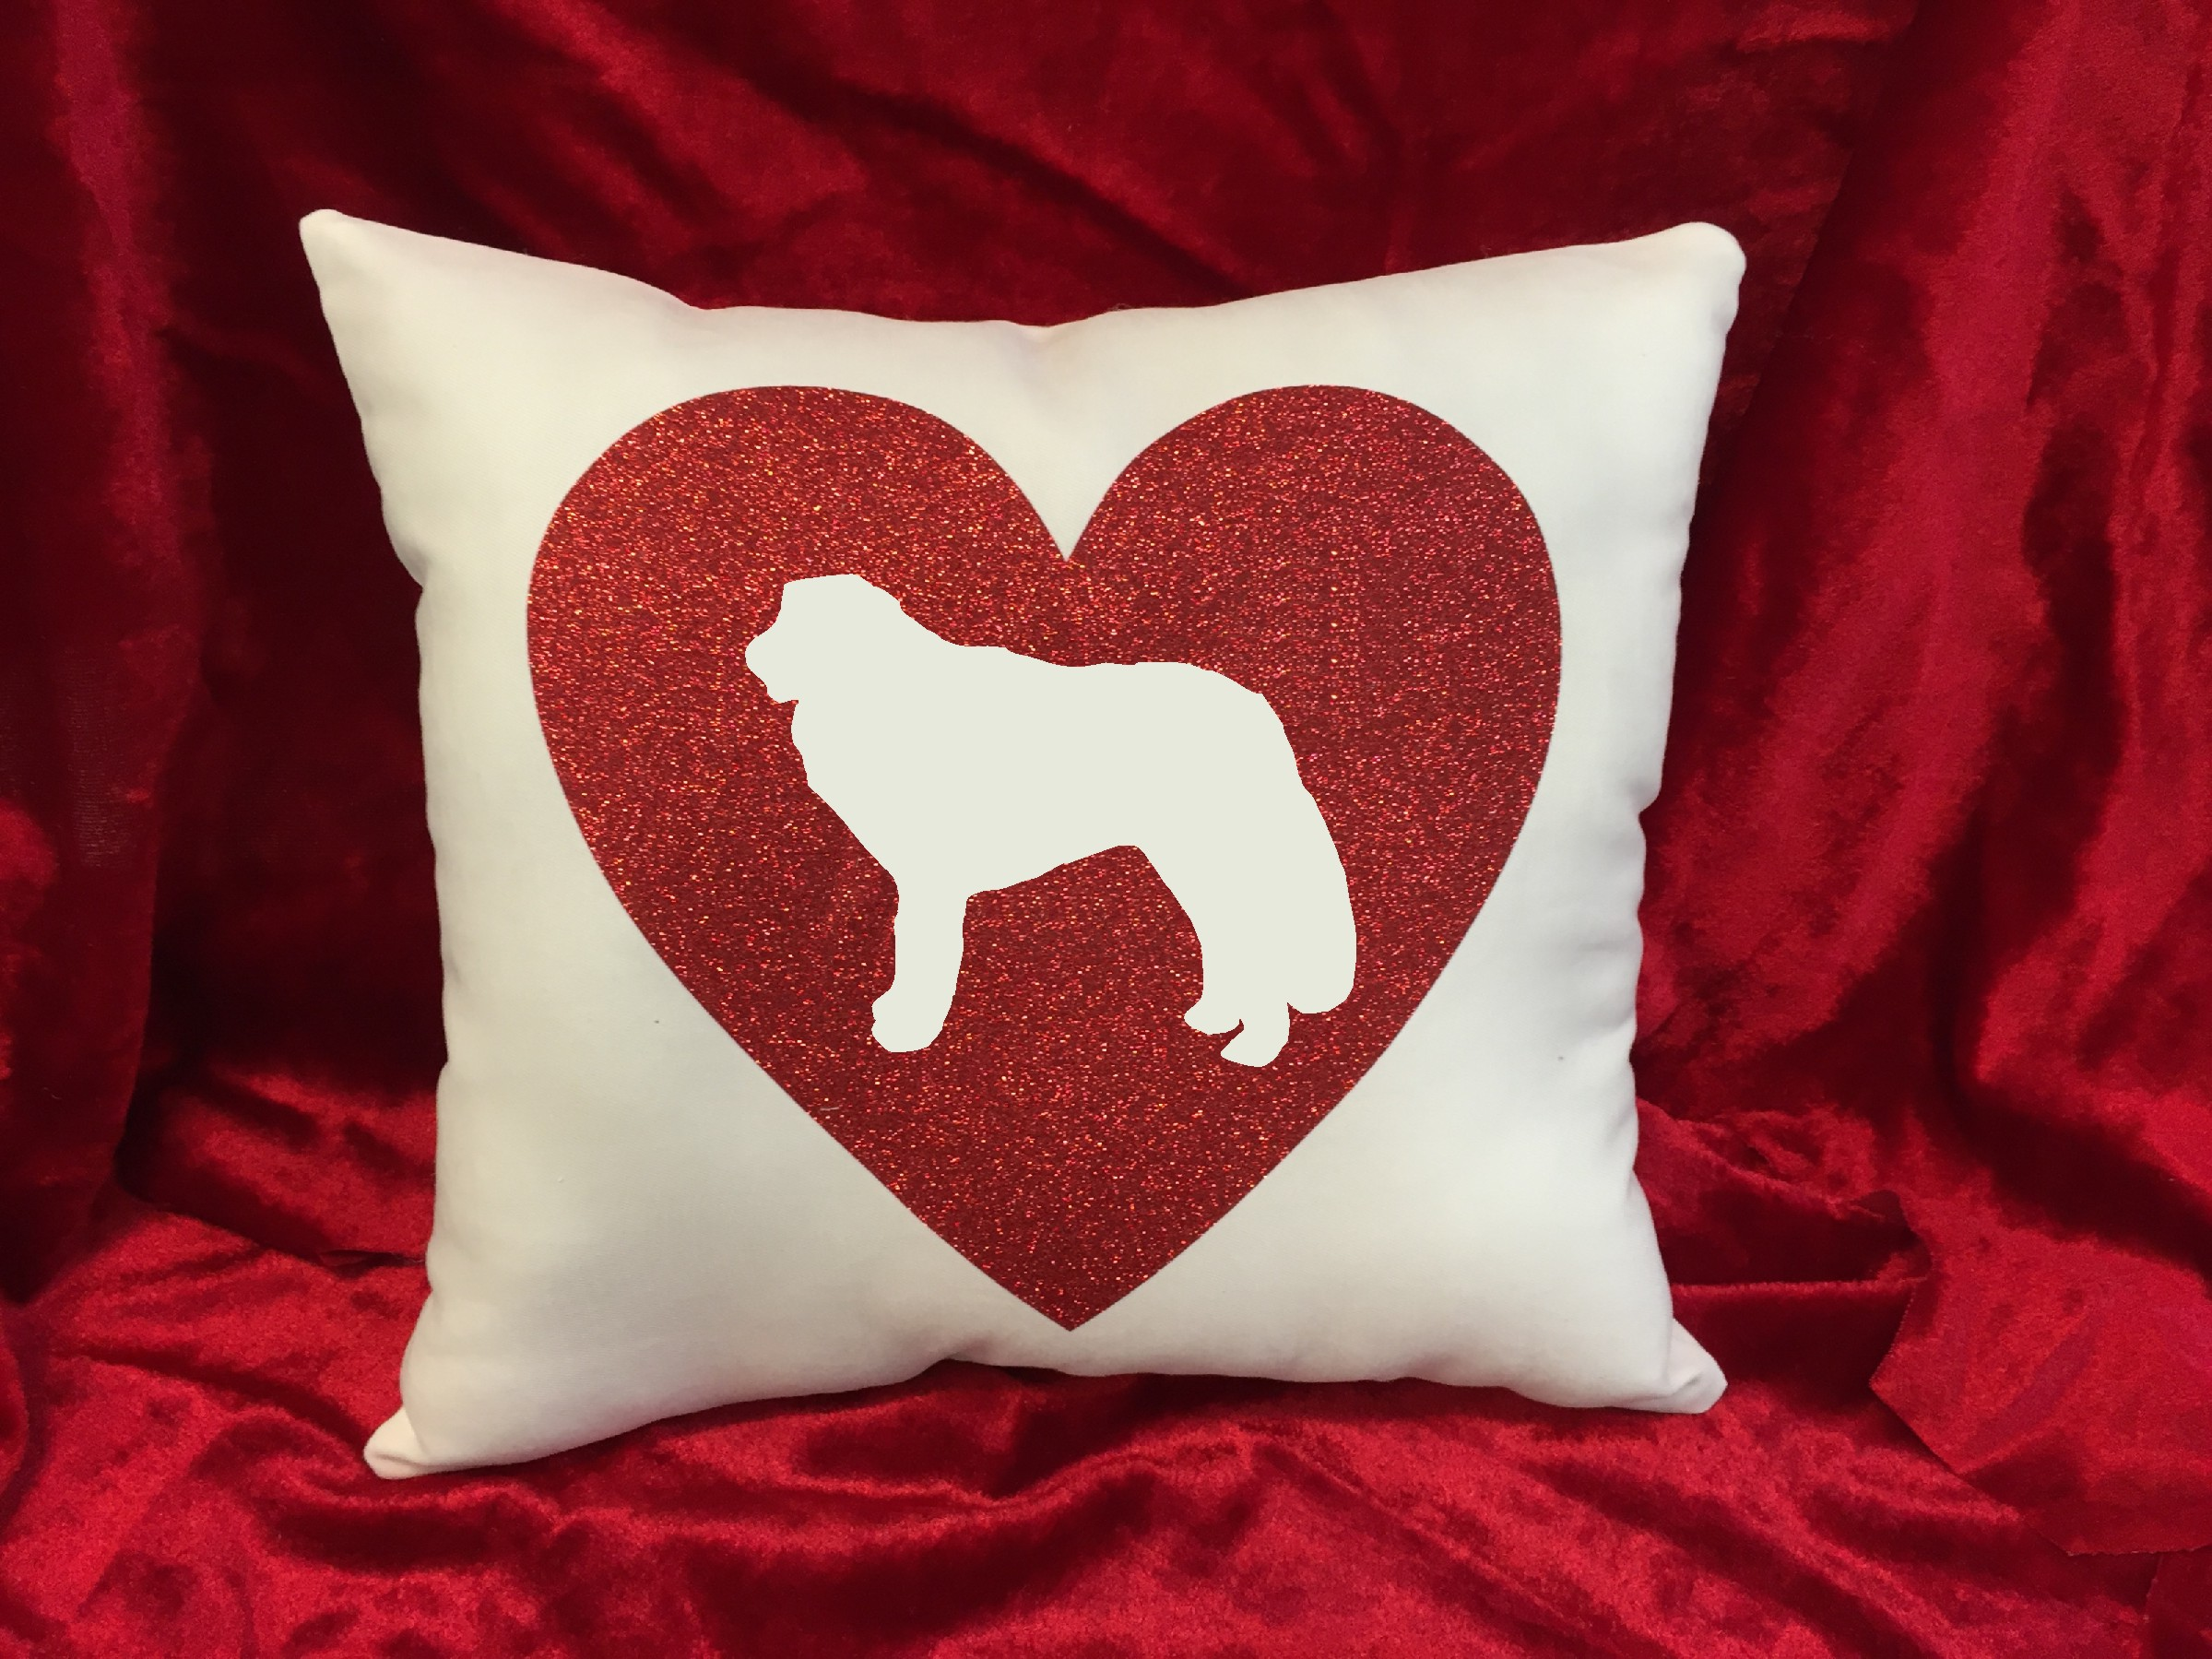 Dogs - Throw Pillow - Kuvasz